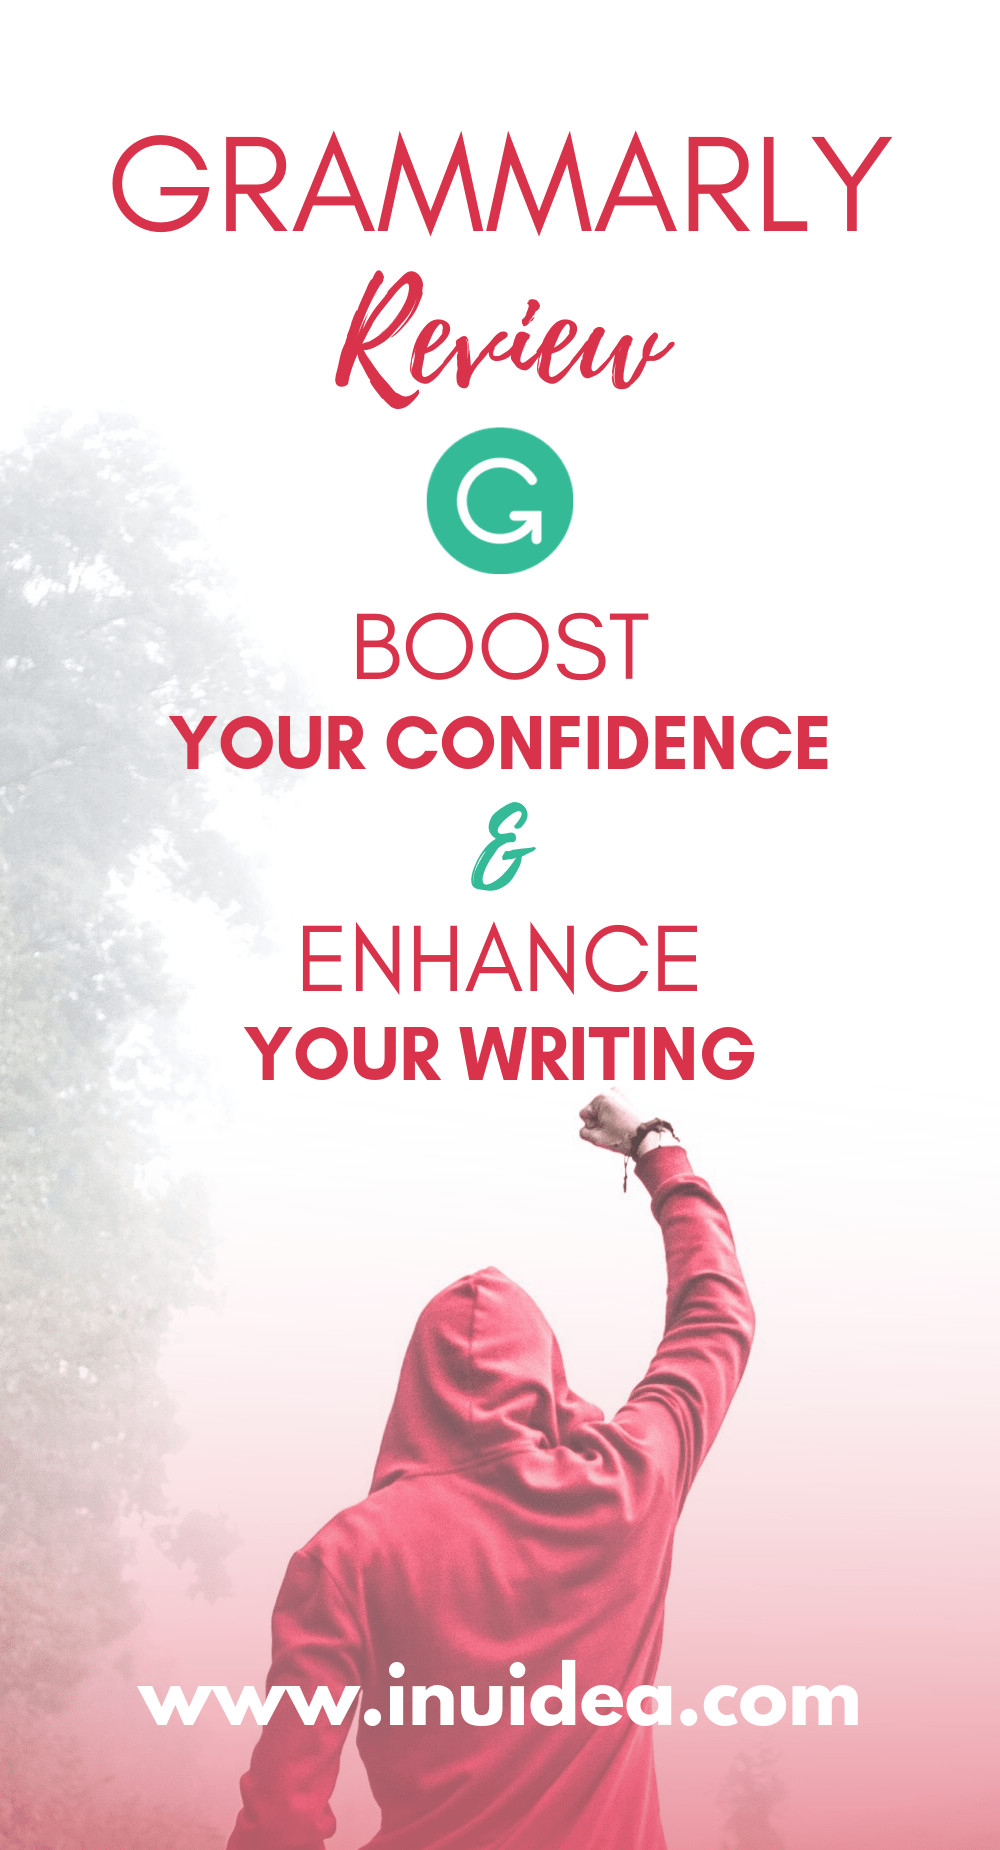 Buy Grammarly Proofreading Software Not In Stores